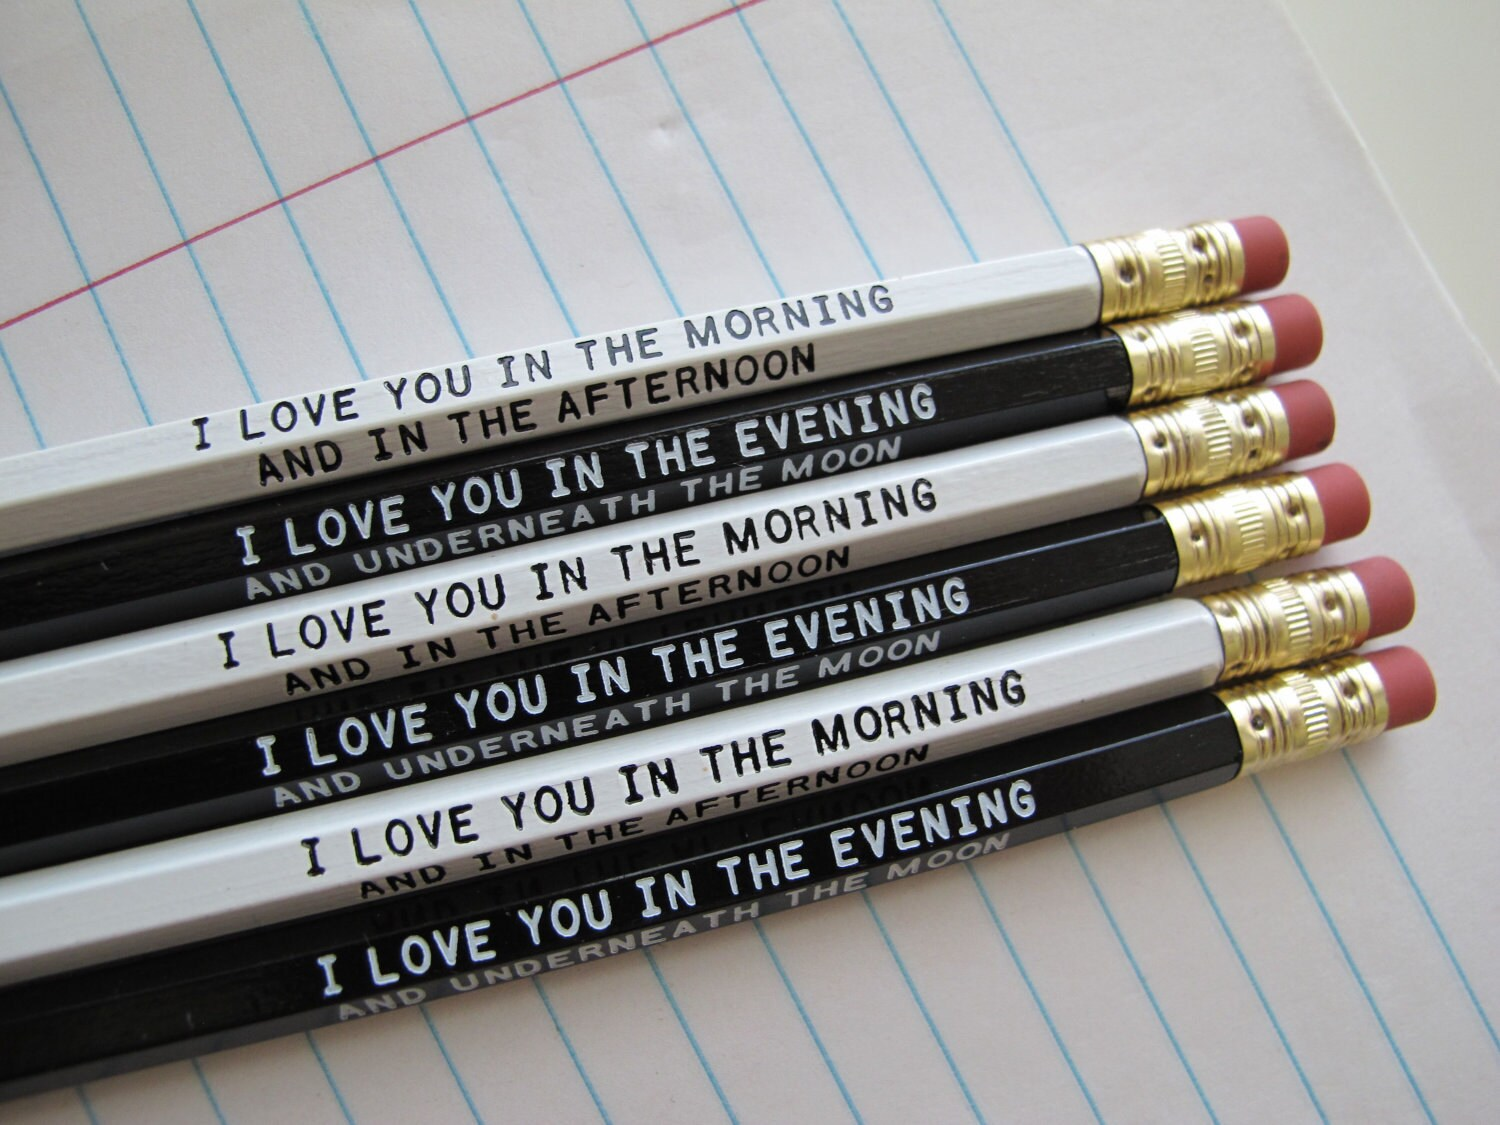 I Love You In The Morning And In The Afternoon I Love You In The Evening And Underneath The Moon Pencils